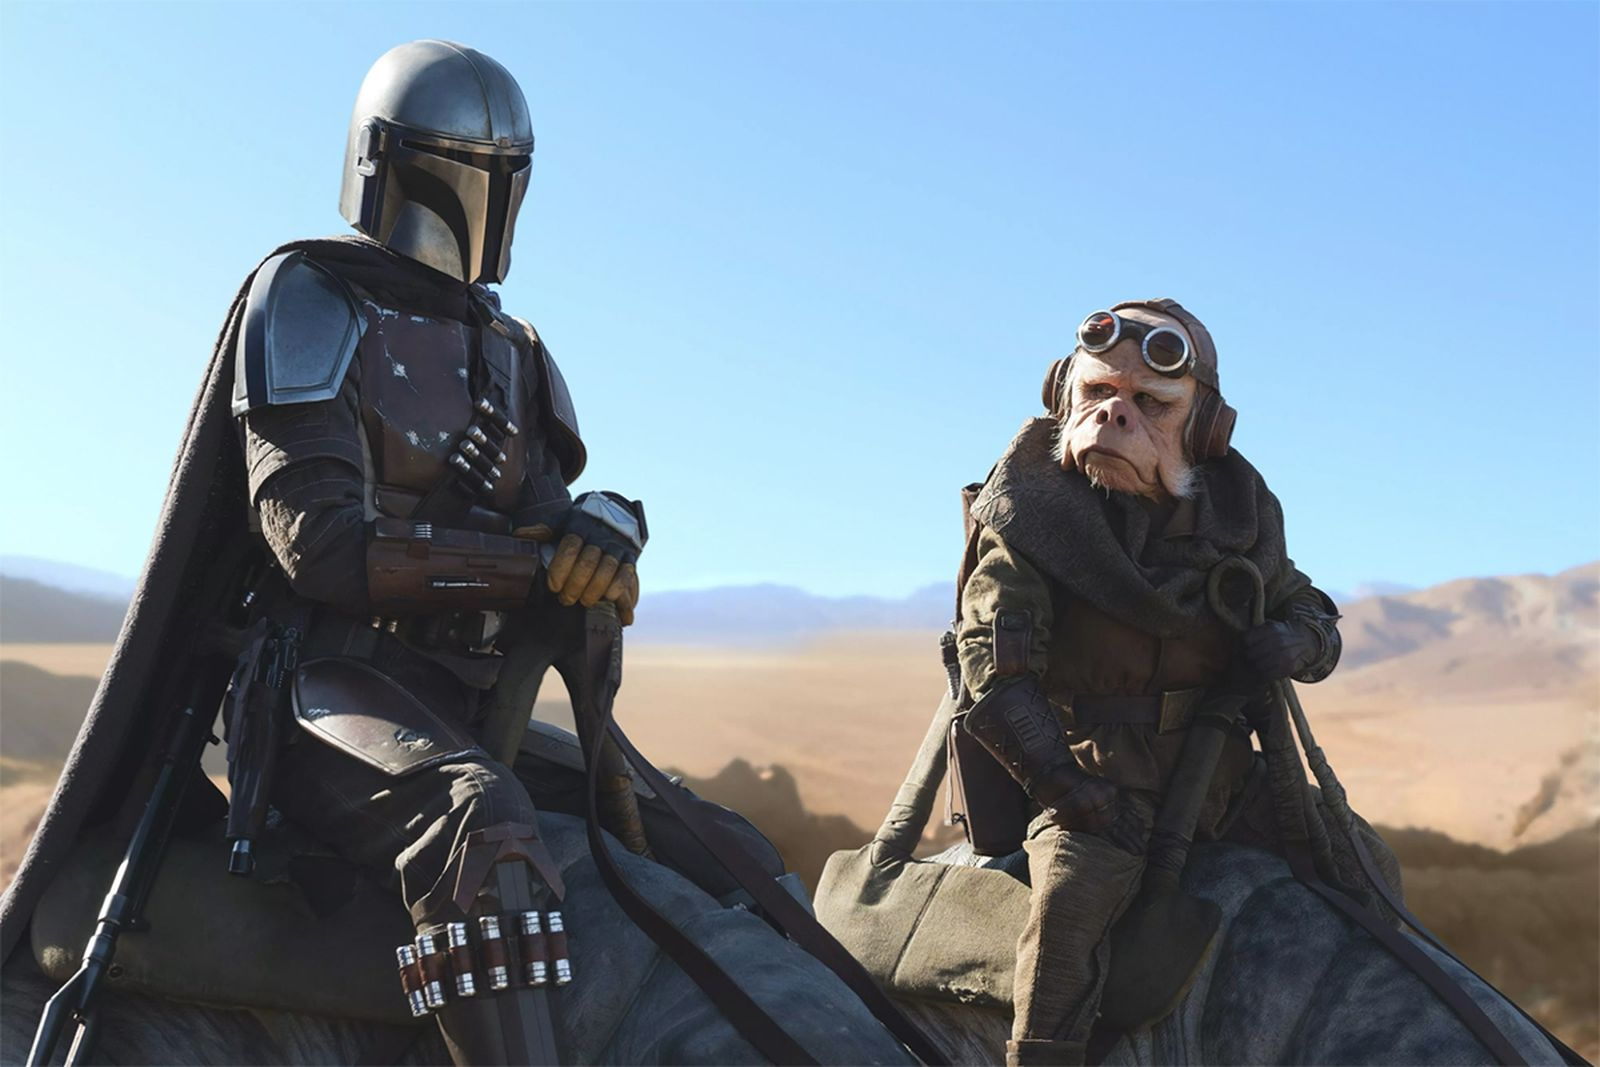 The Mandalorian Season 2 Release Date Revealed